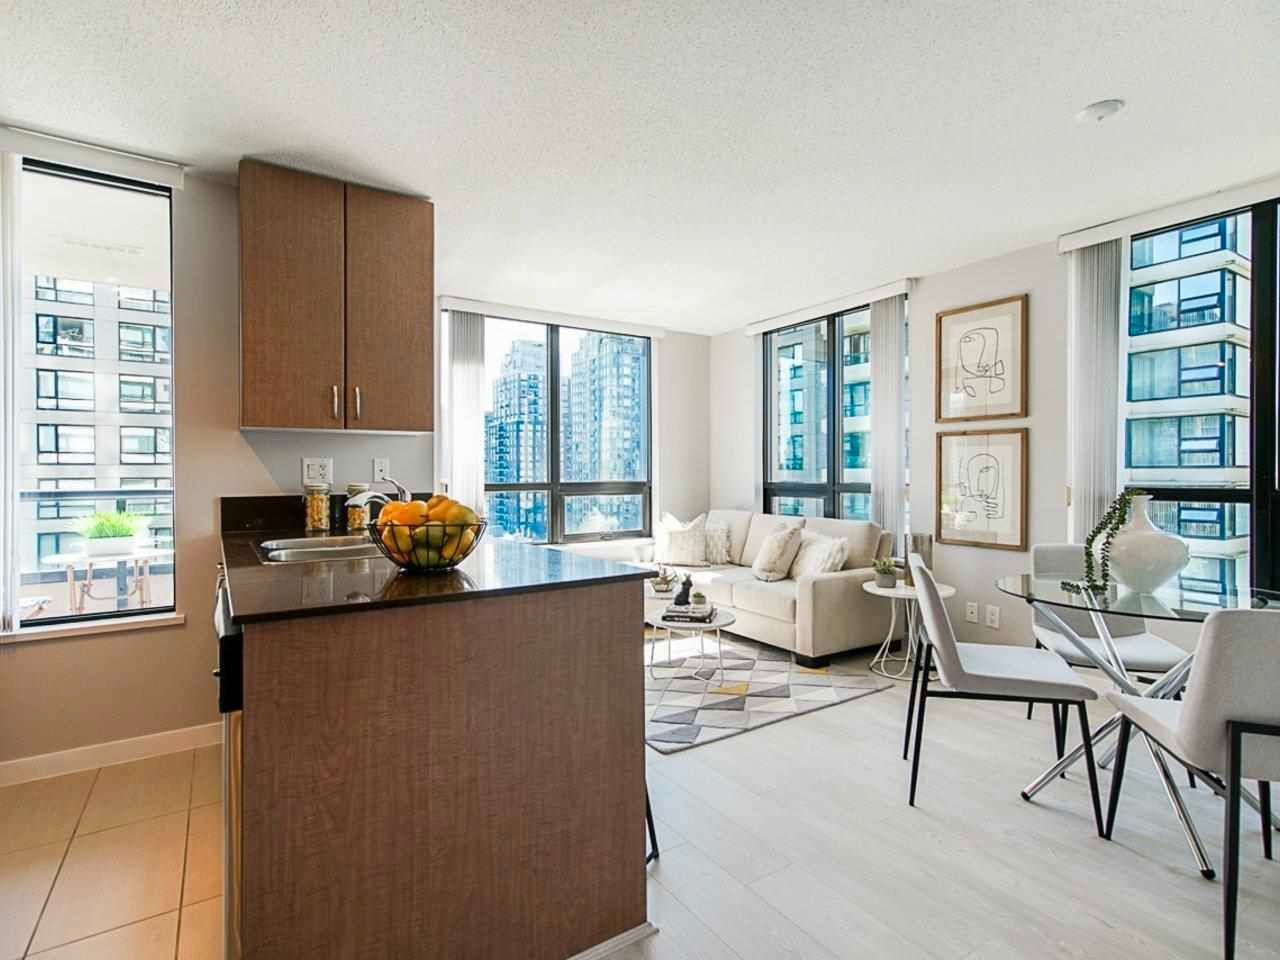 """Main Photo: 1307 909 MAINLAND Street in Vancouver: Yaletown Condo for sale in """"Yaletown Park 2"""" (Vancouver West)  : MLS®# R2589059"""